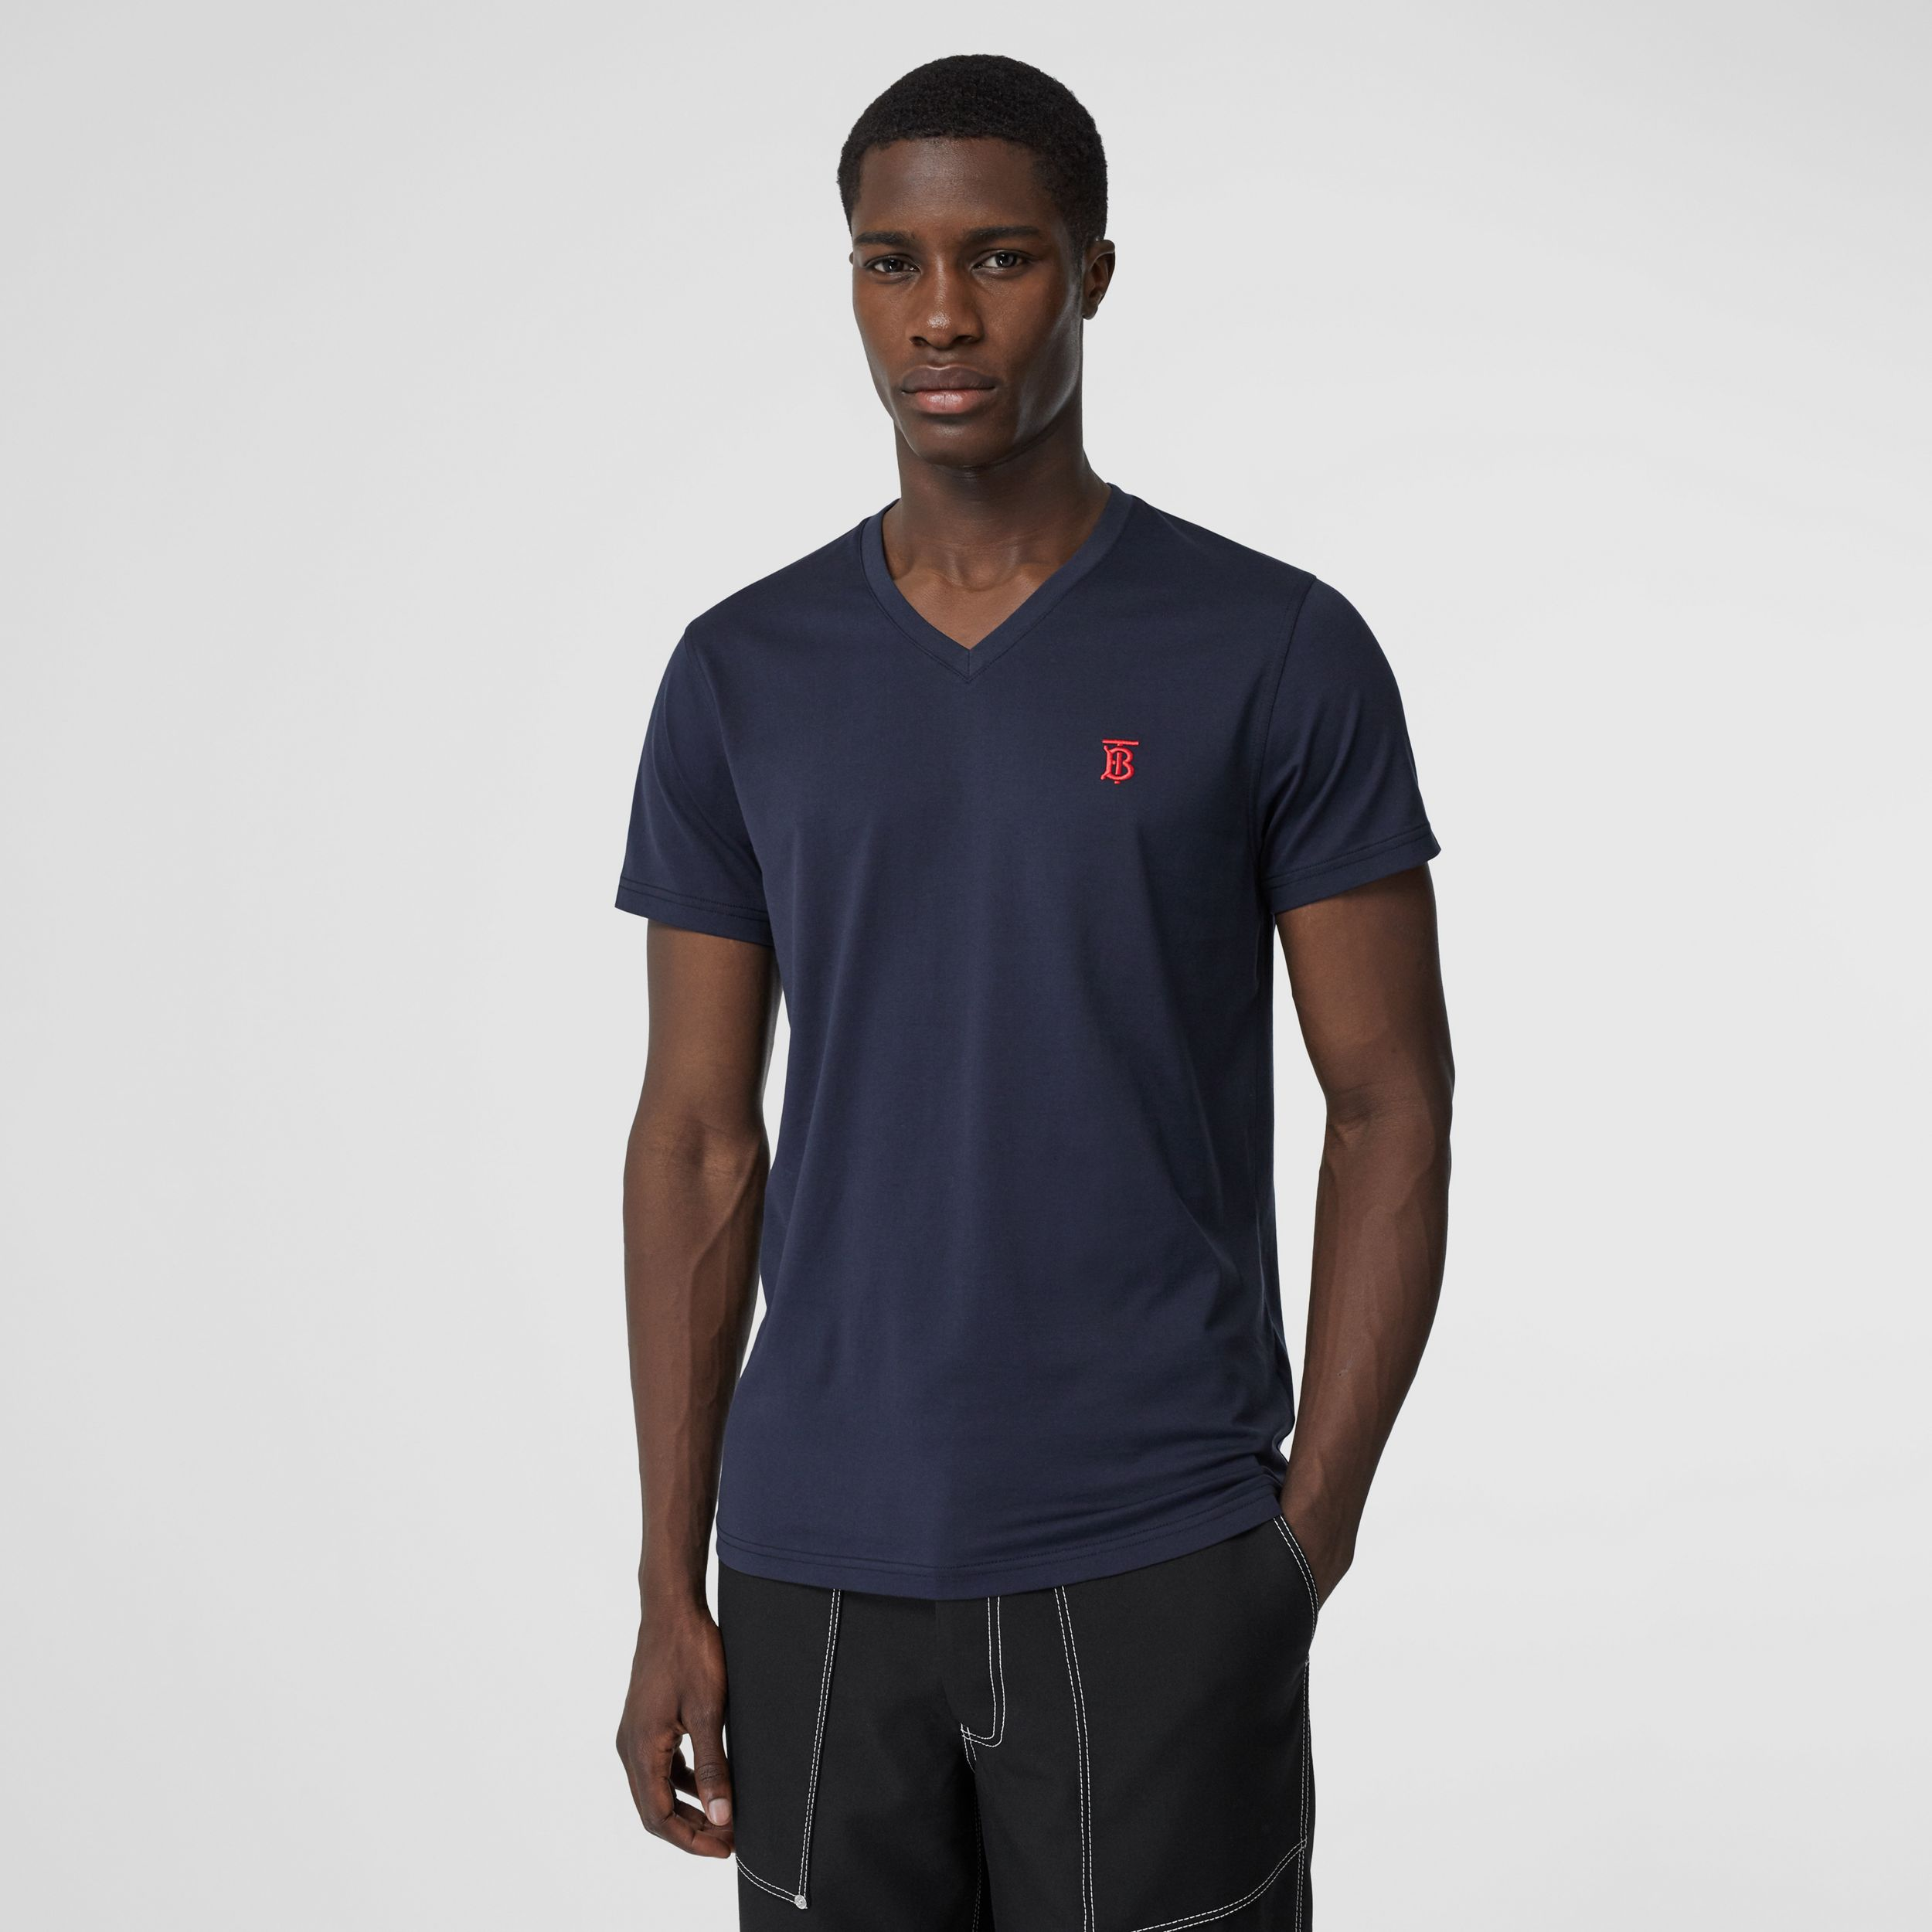 Monogram Motif Cotton V-neck T-shirt in Navy - Men | Burberry - 1